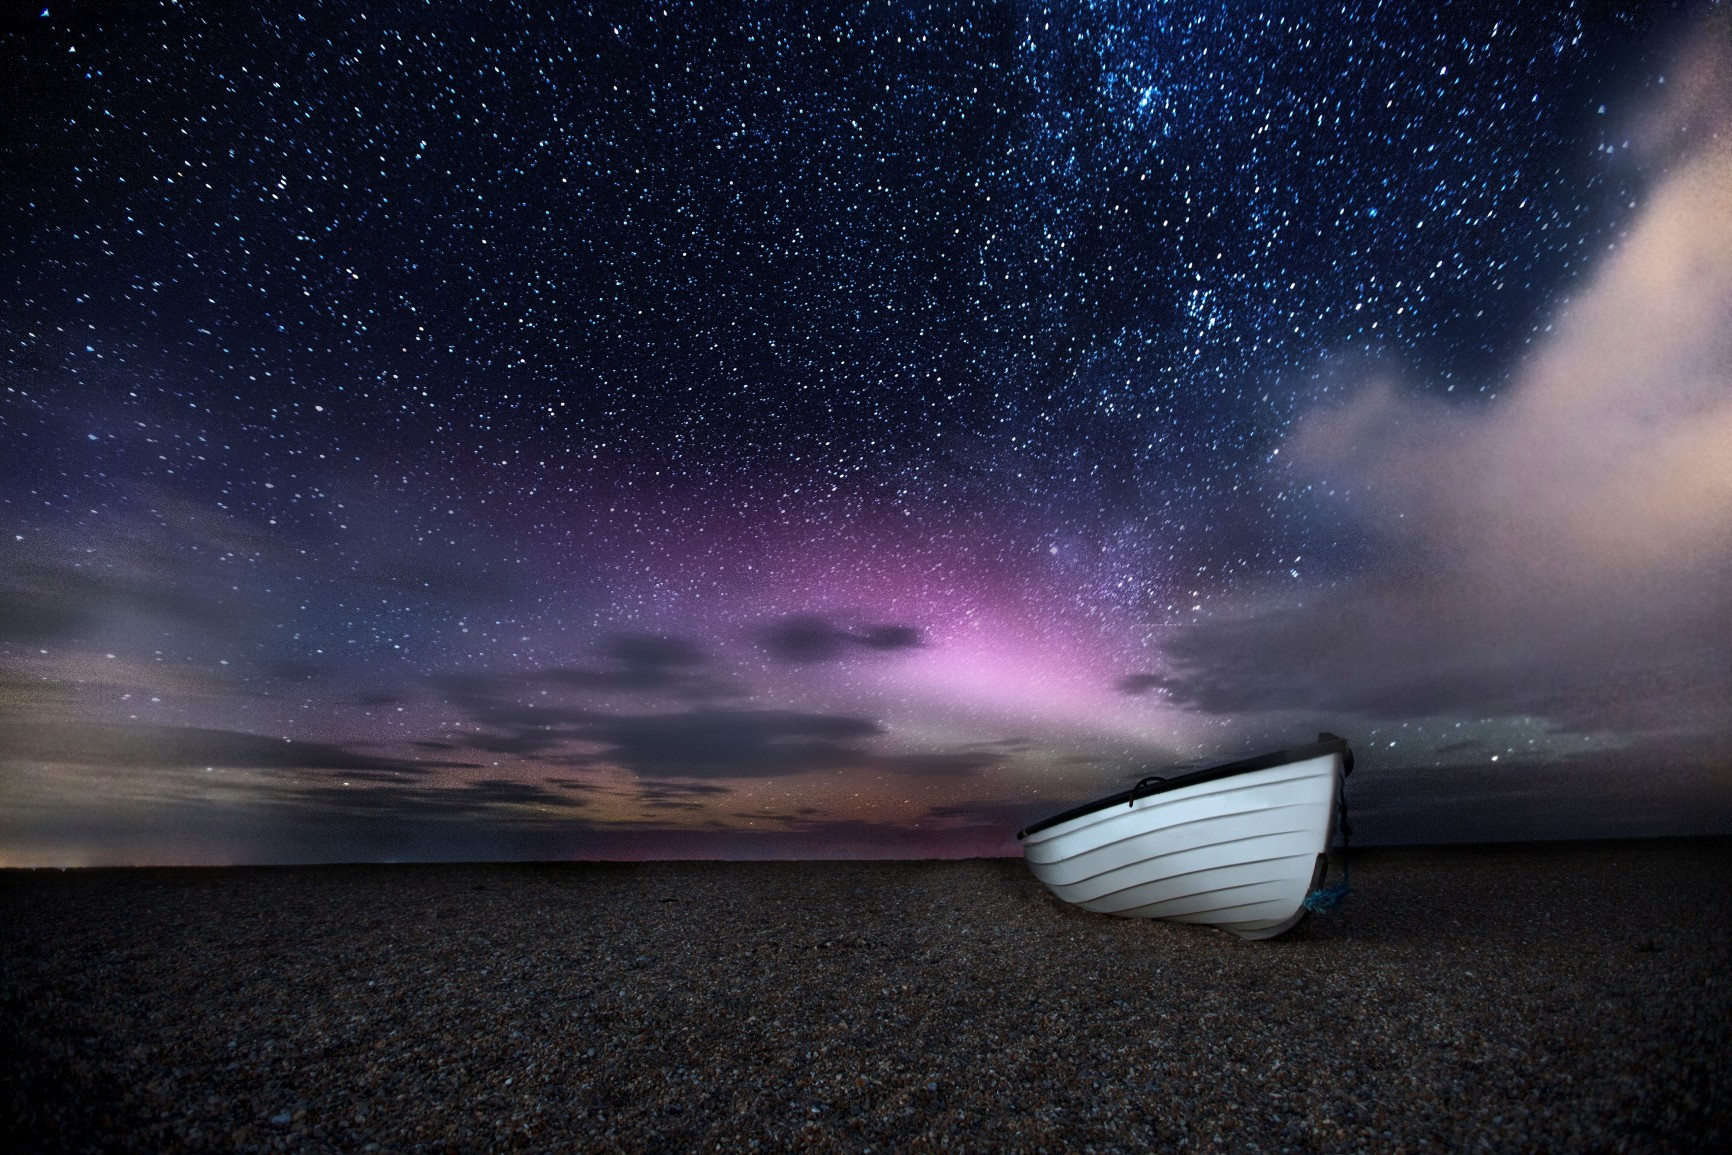 1st Place - The Stars at Cley - Rose Sapey